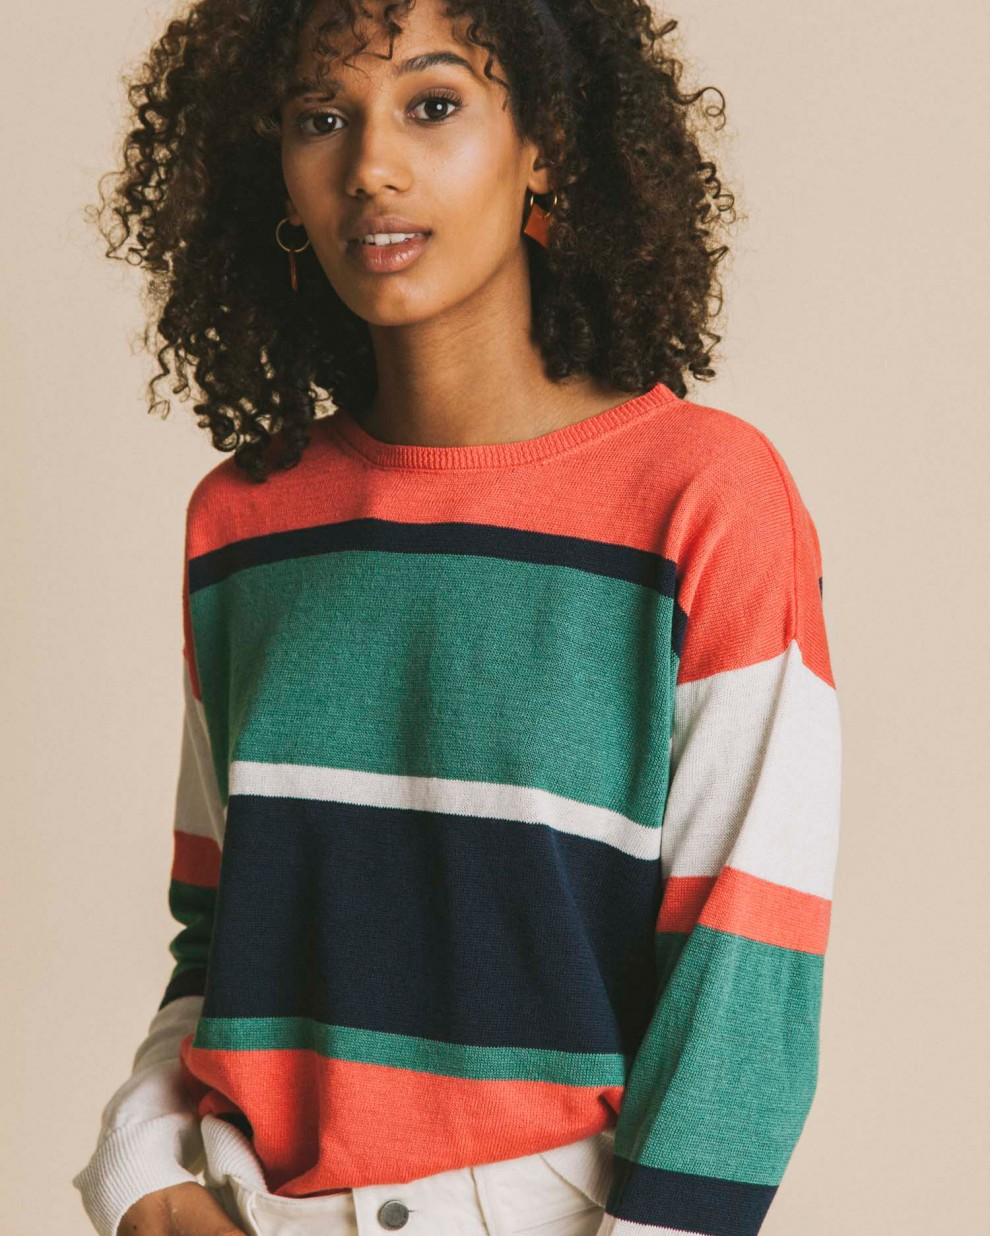 Multicolor Shebelle sweater